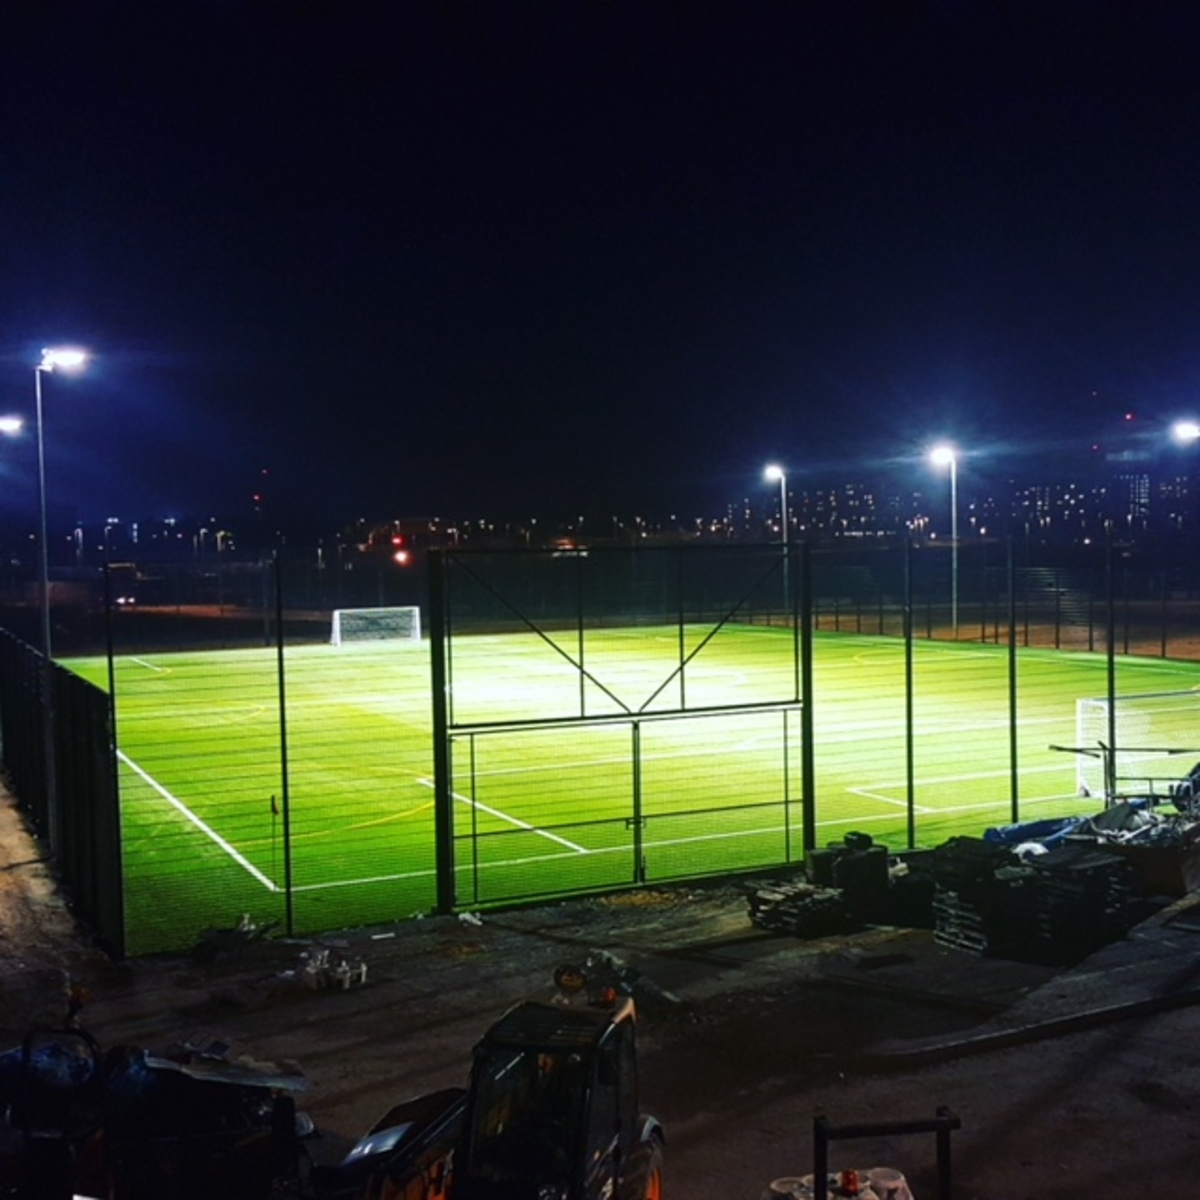 Artifical Pitch 2g 3g Football Pitch At Bobby Moore Academy For Hire In Newham Schoolhire